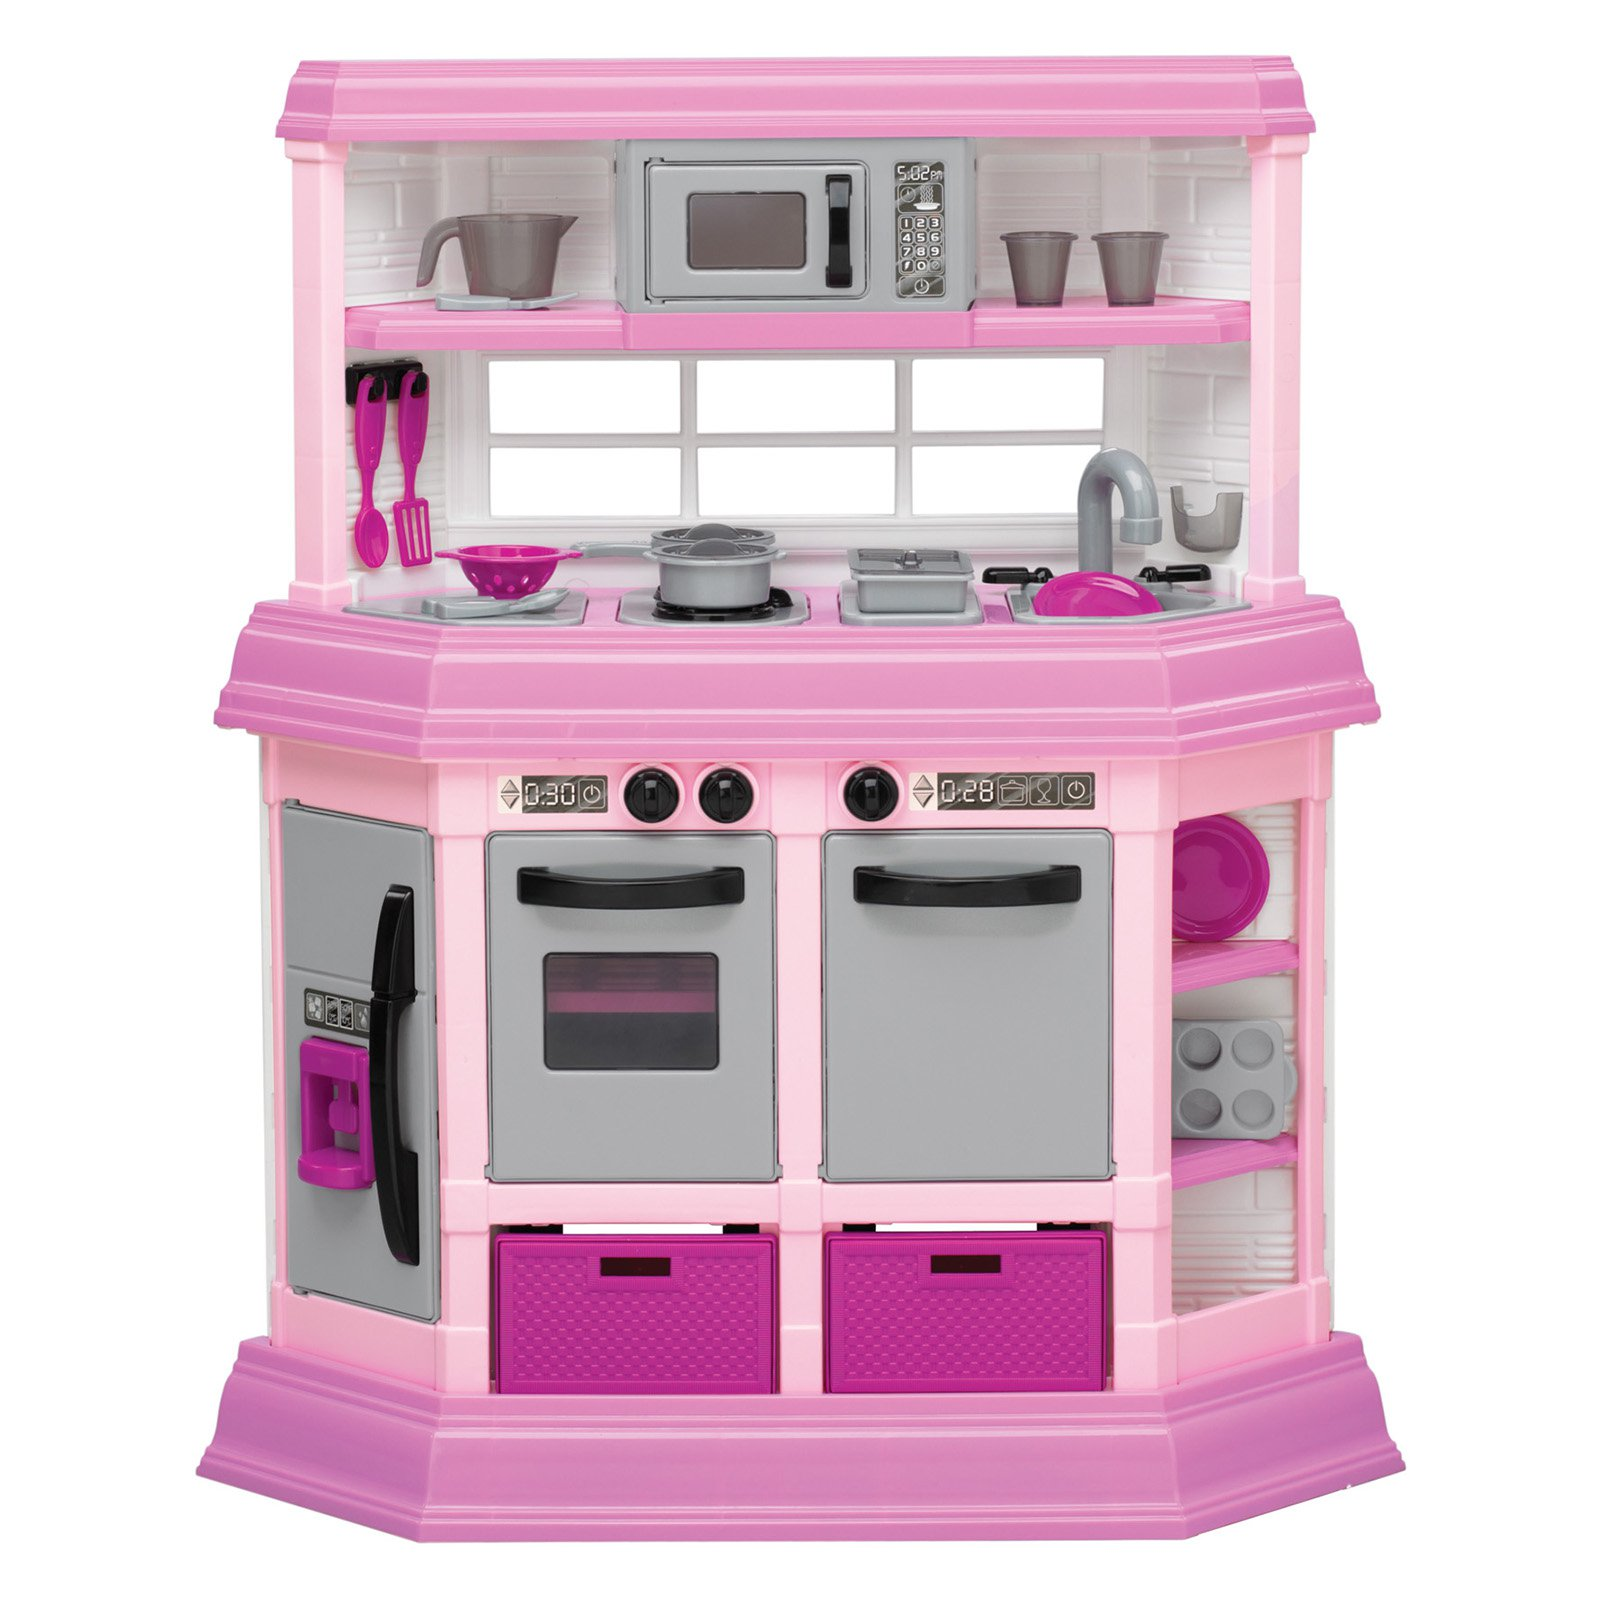 American plastic toys deluxe custom kitchen with 22 accessories walmart com